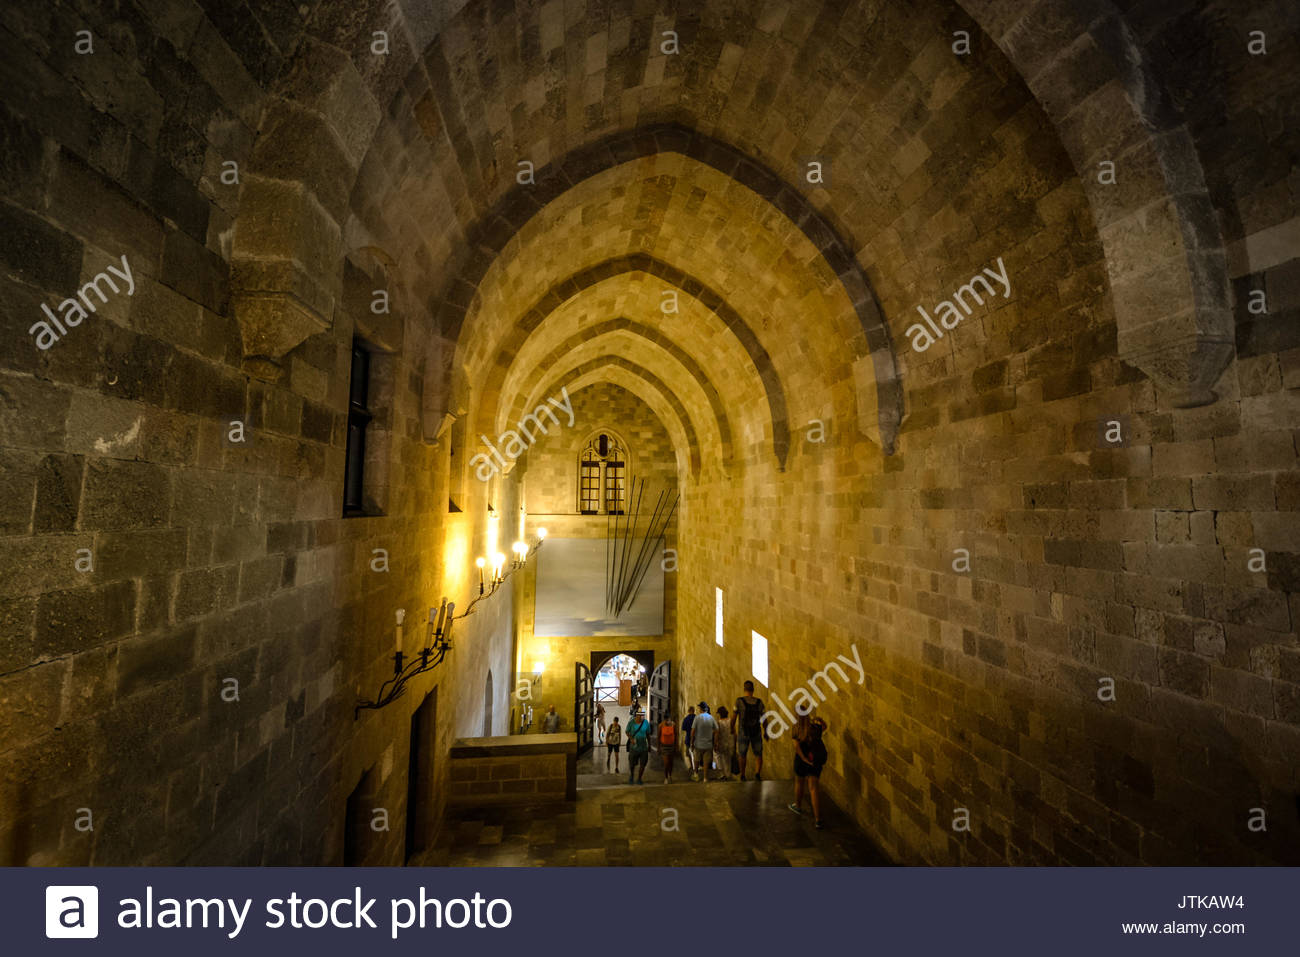 The interior grand staircase of the Palace of the Grand Master of the Knights of Rhodes with huge vaulted ceilings - Stock Image